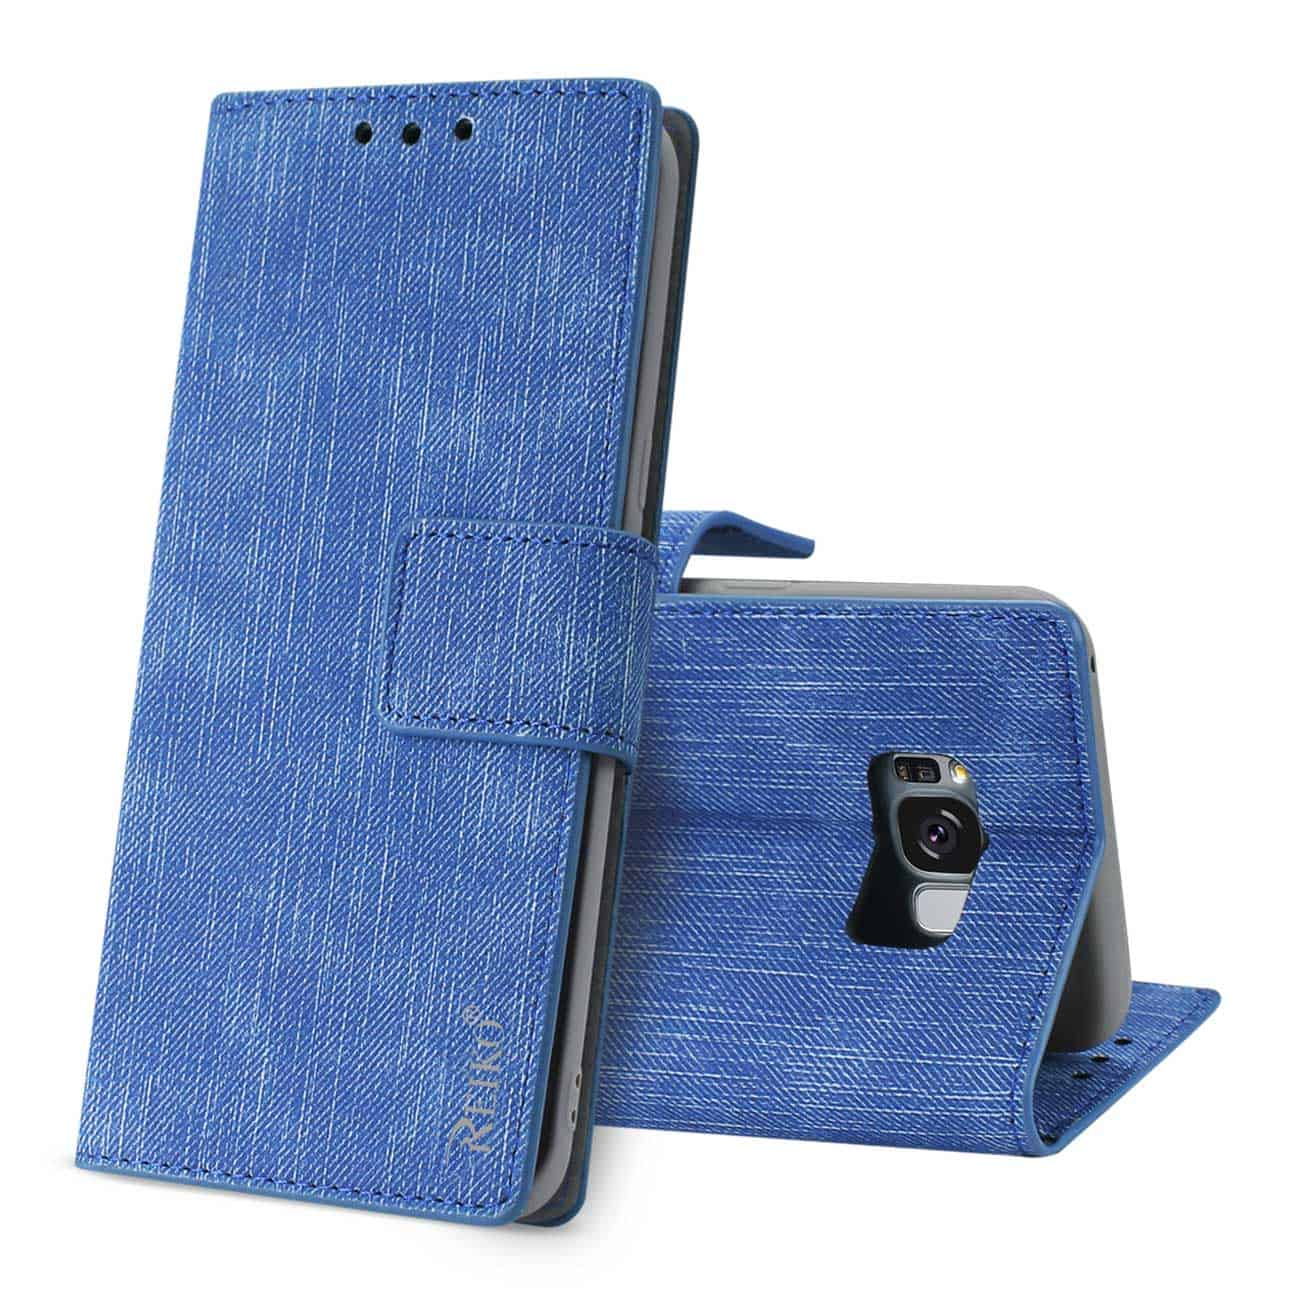 SAMSUNG S8 EDGE/ S8 PLUS DENIM WALLET CASE WITH GUMMY INNER SHELL AND KICKSTAND FUNCTION IN NAVY